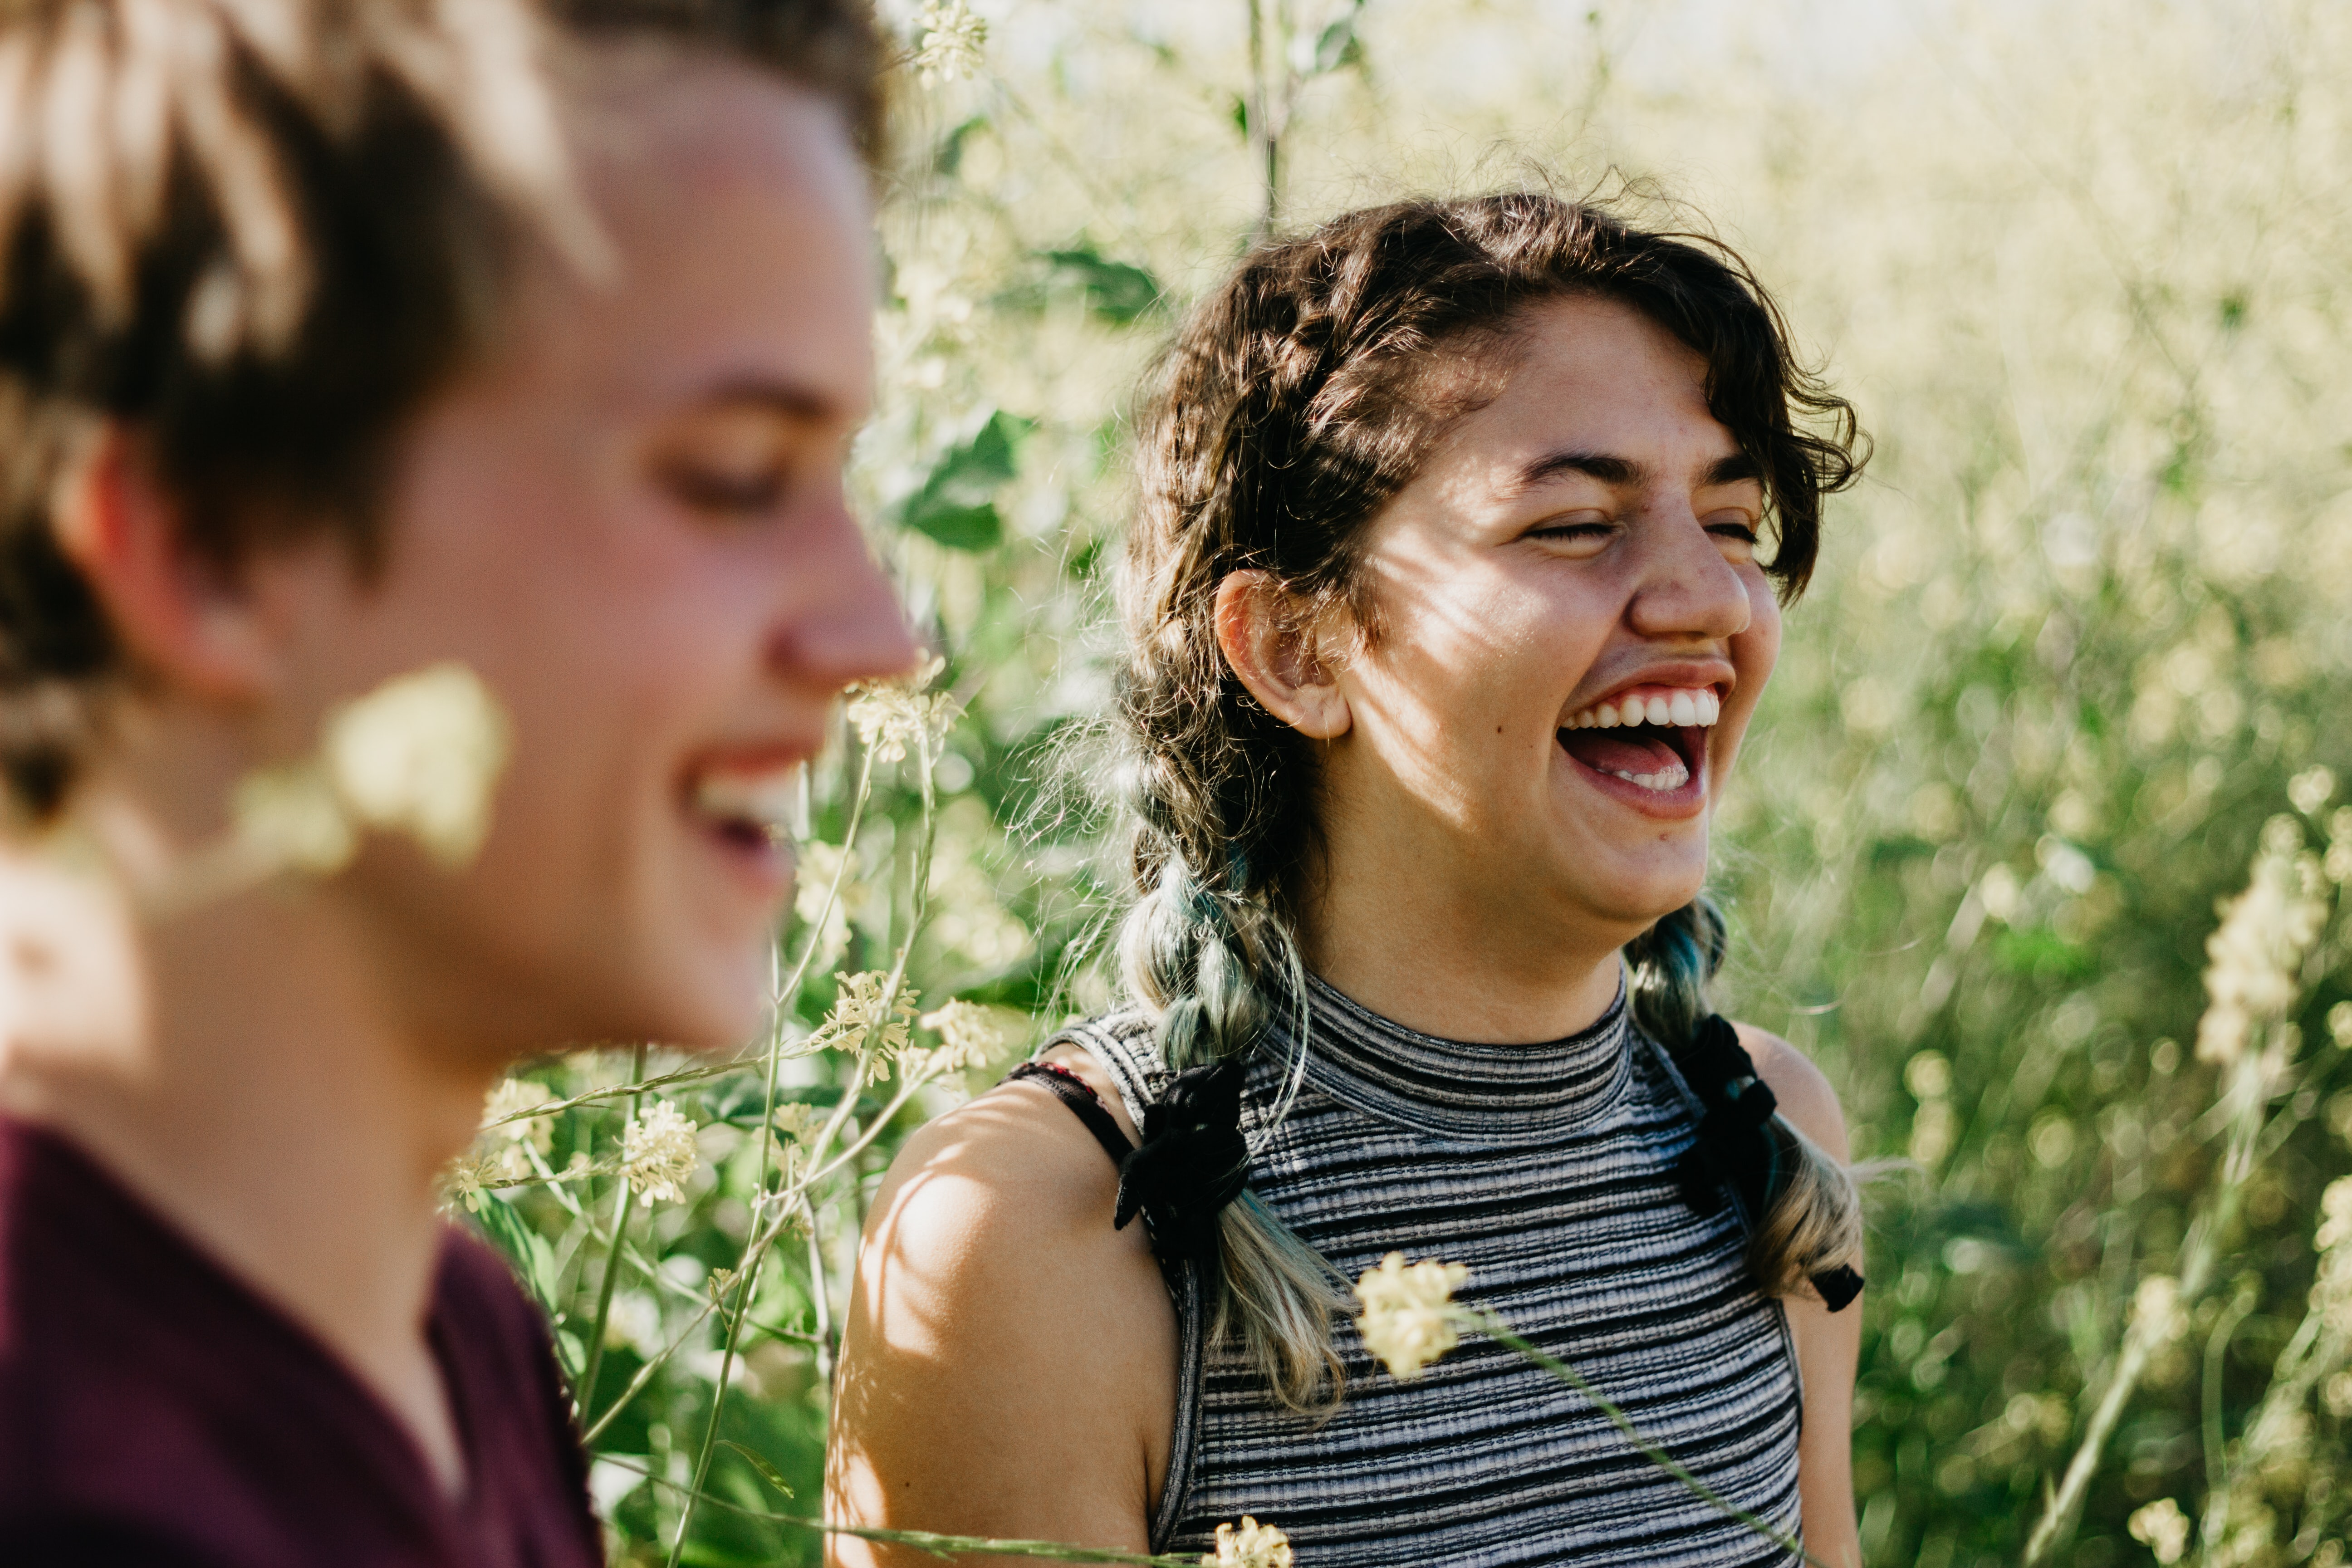 man and woman laughing surrounded with green grass during daytime